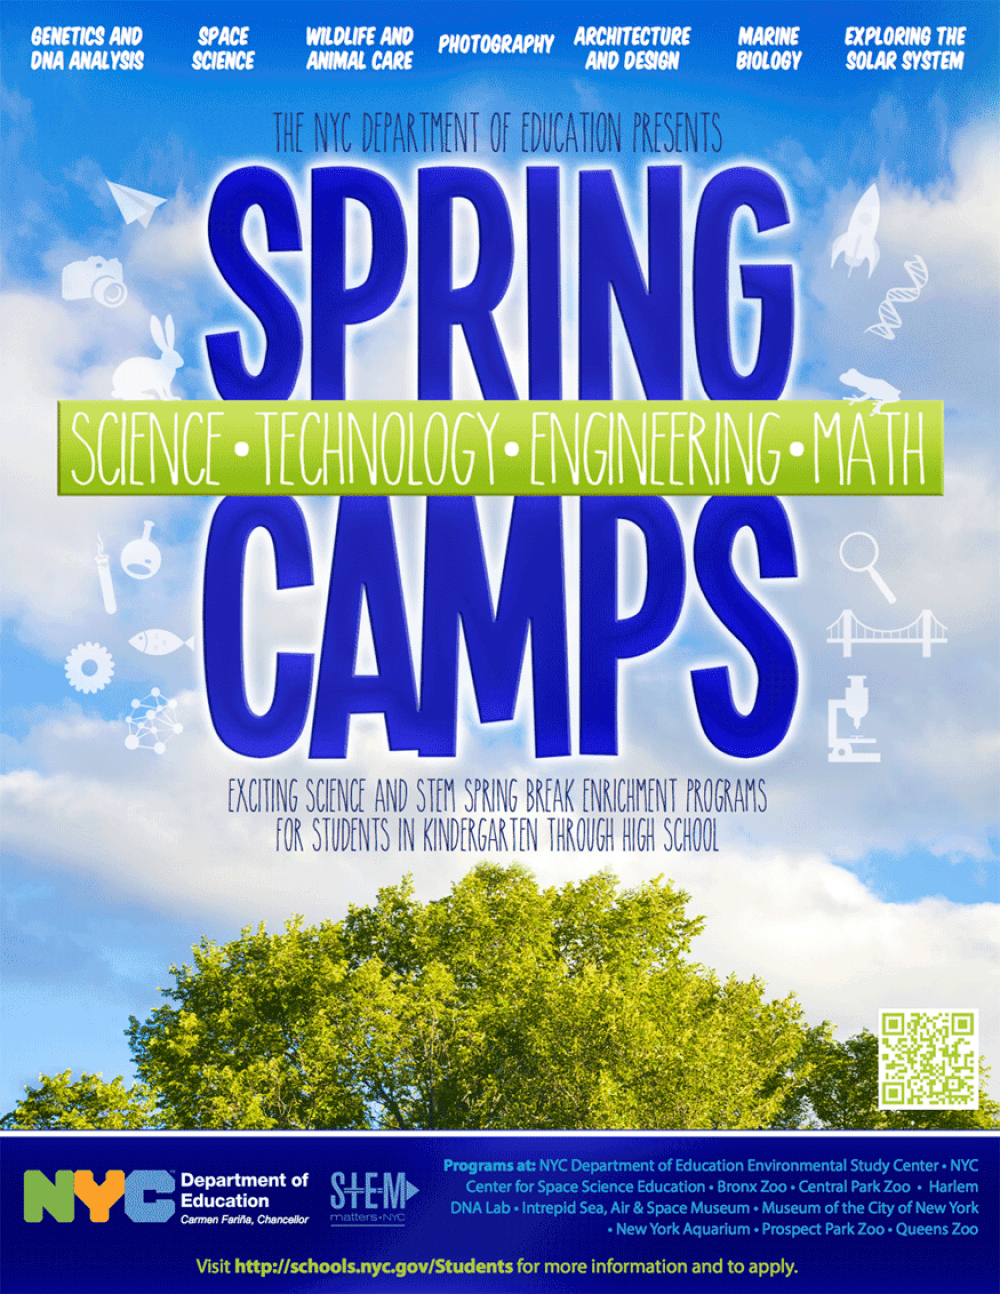 STEM_matters_NYC_spring_break_camps_flyer_2016